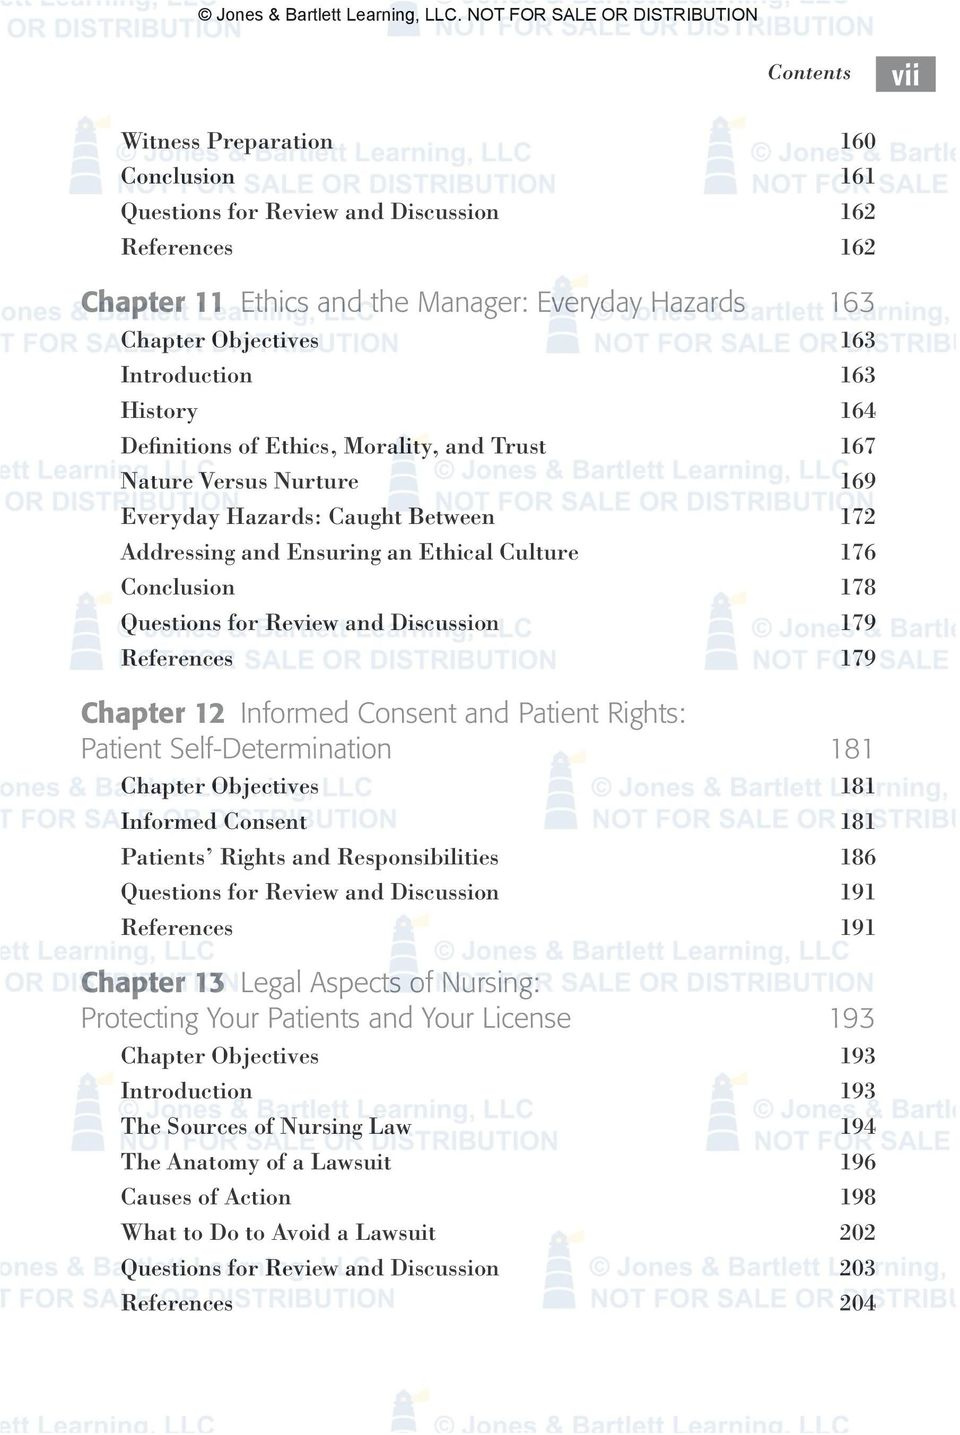 for Review and Discussion 179 References 179 Chapter 12 Informed Consent and Patient Rights: Patient Self-Determination 181 Chapter Objectives 181 Informed Consent 181 Patients Rights and